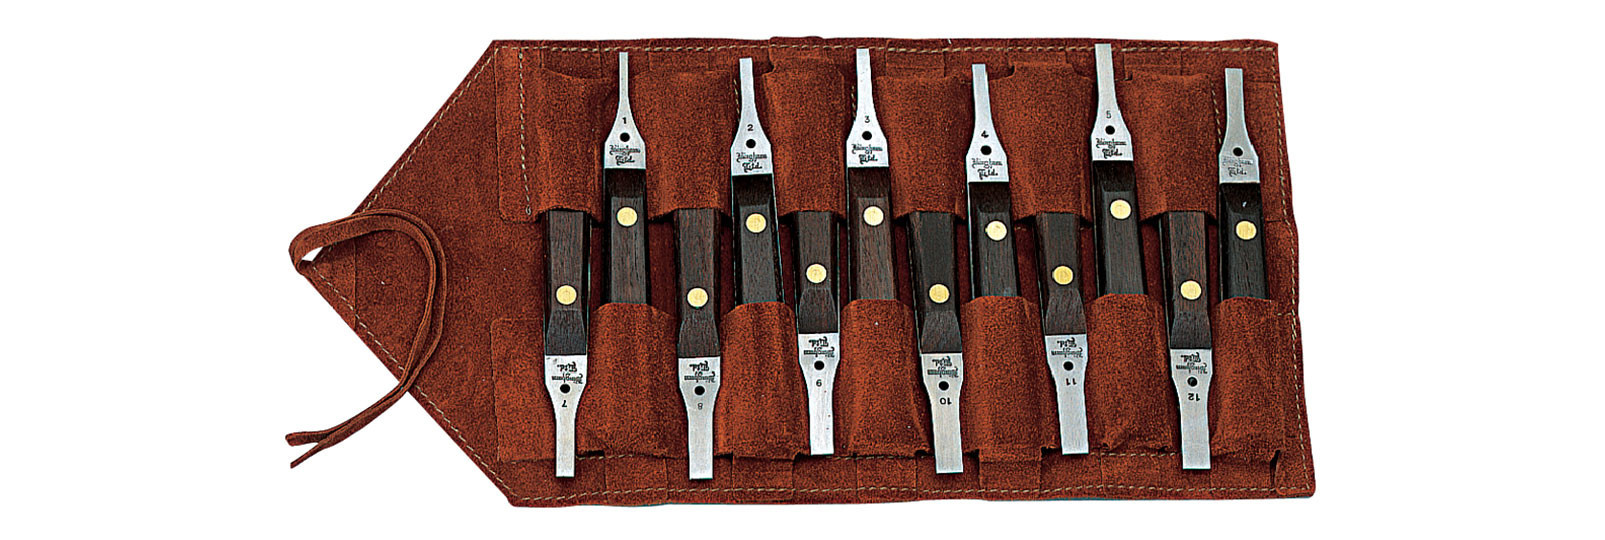 Set of 12 screwdrivers